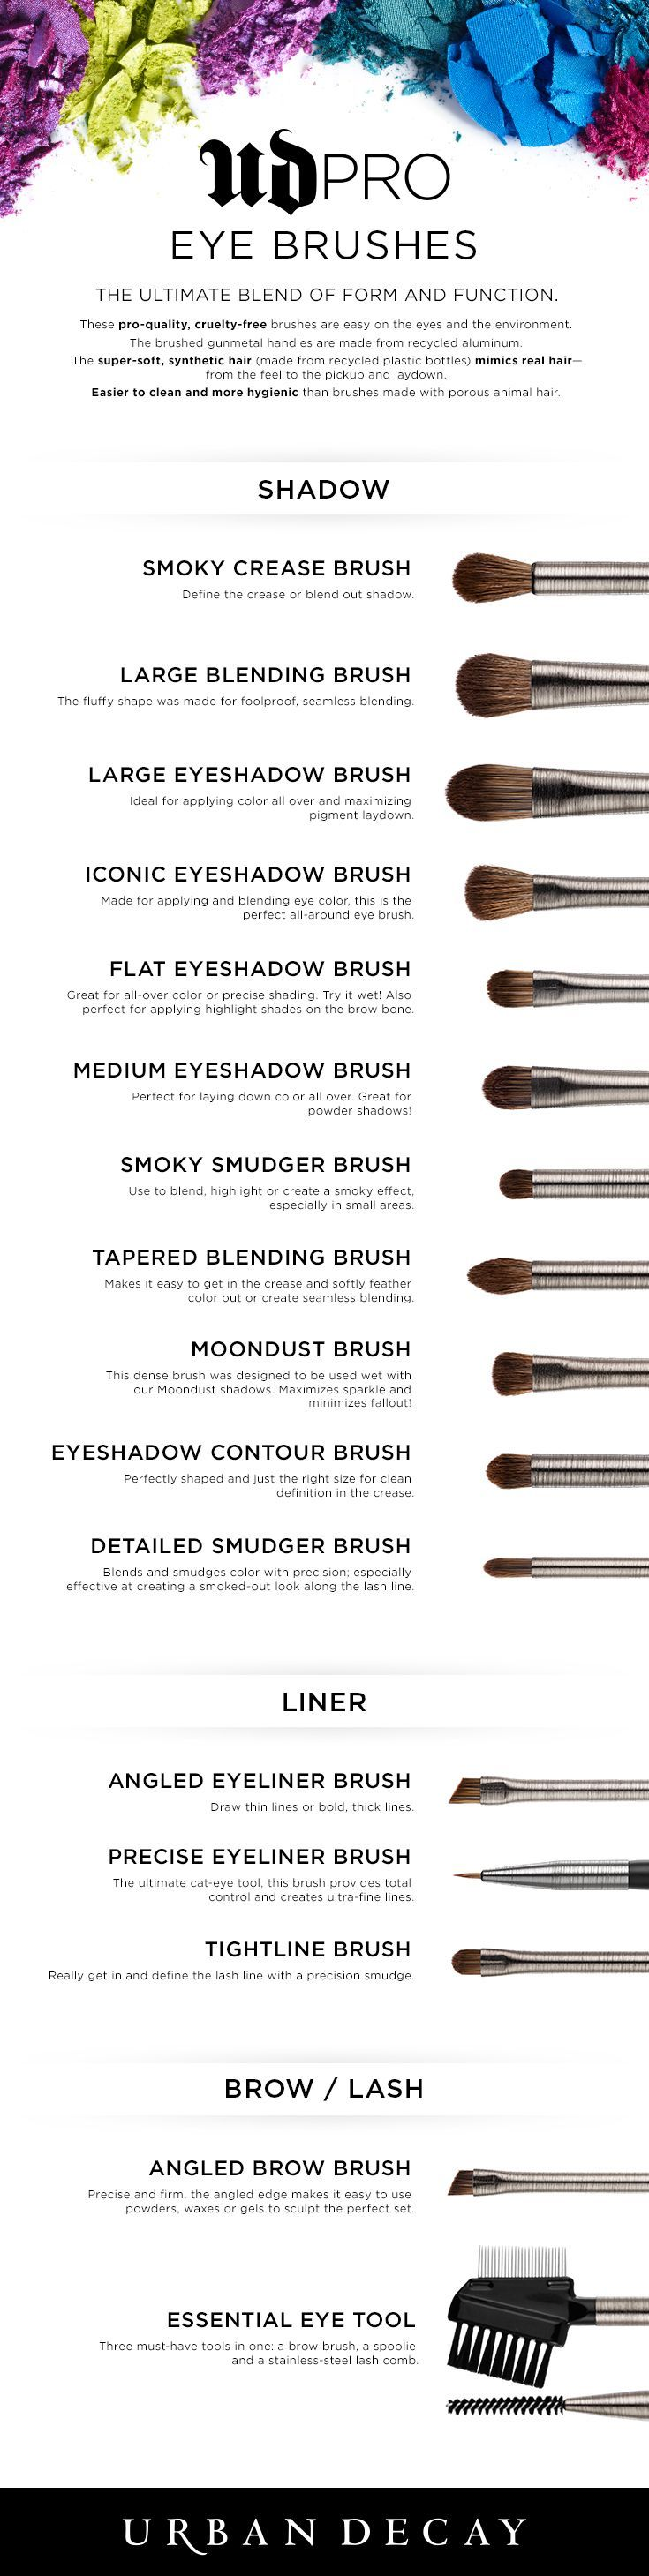 From Eye Shadow to Eyeliner, get all of the UD Pro Brushes and Tools you need to create the perfect eye looks. (Beauty Products Urban Decay)